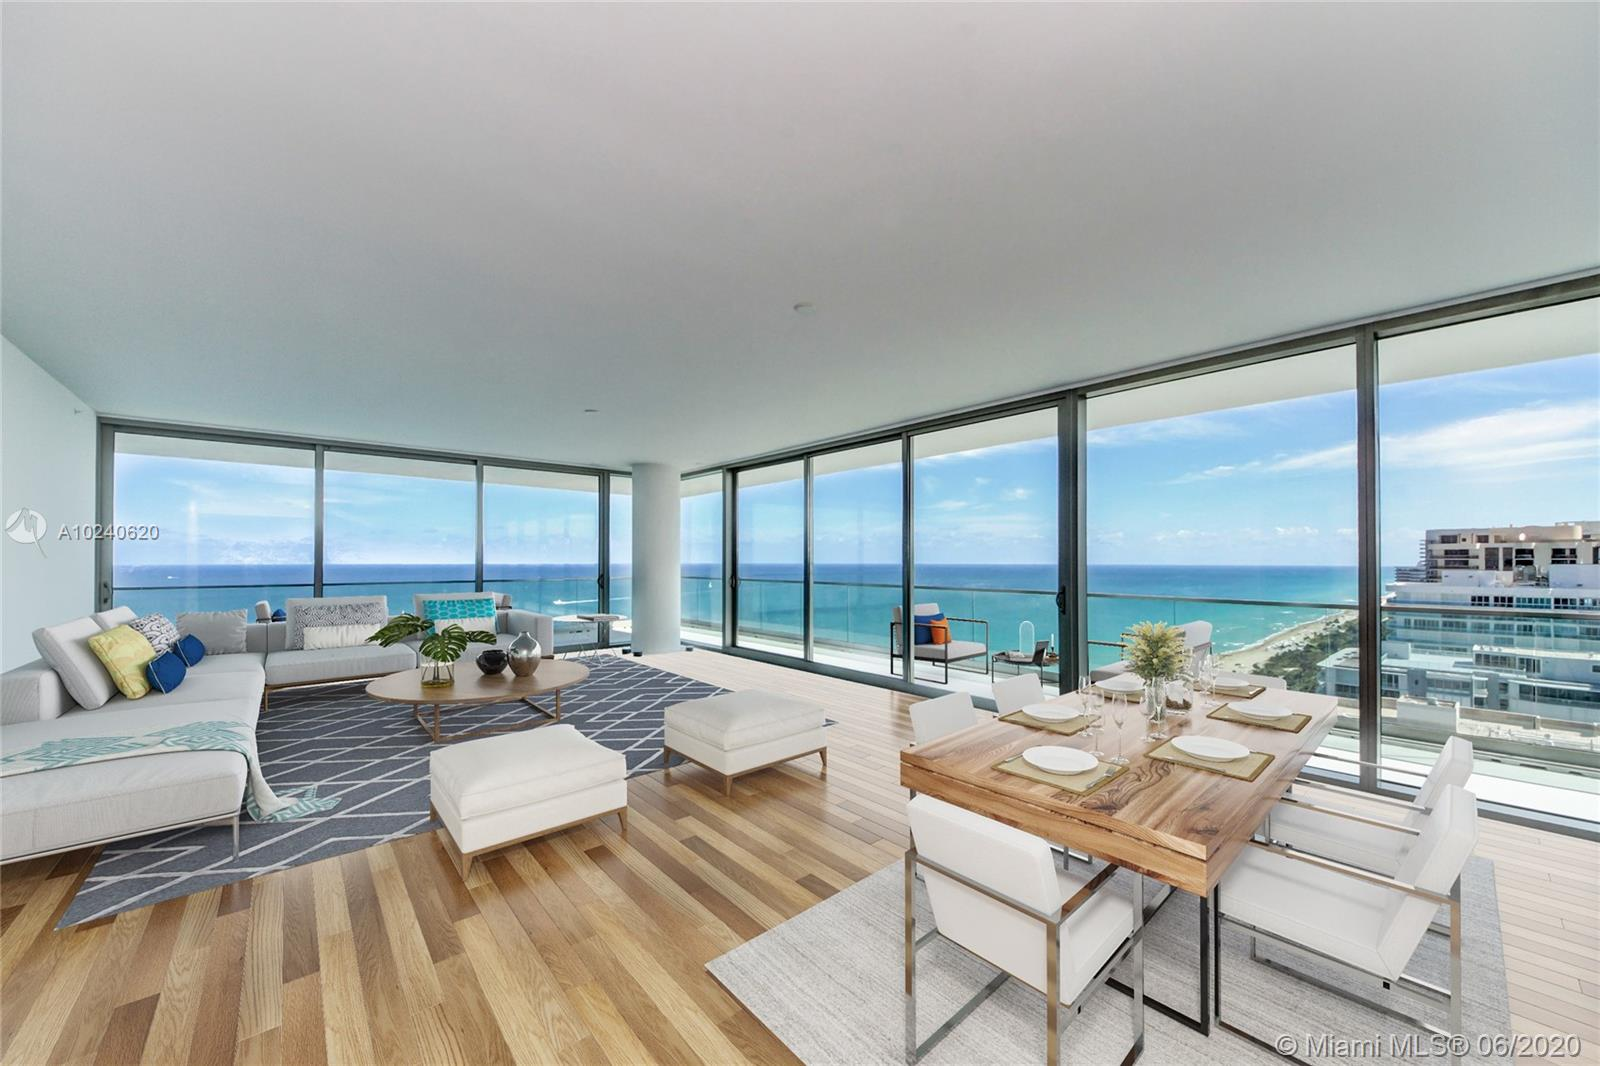 10201  Collins Ave #2401S For Sale A10240620, FL